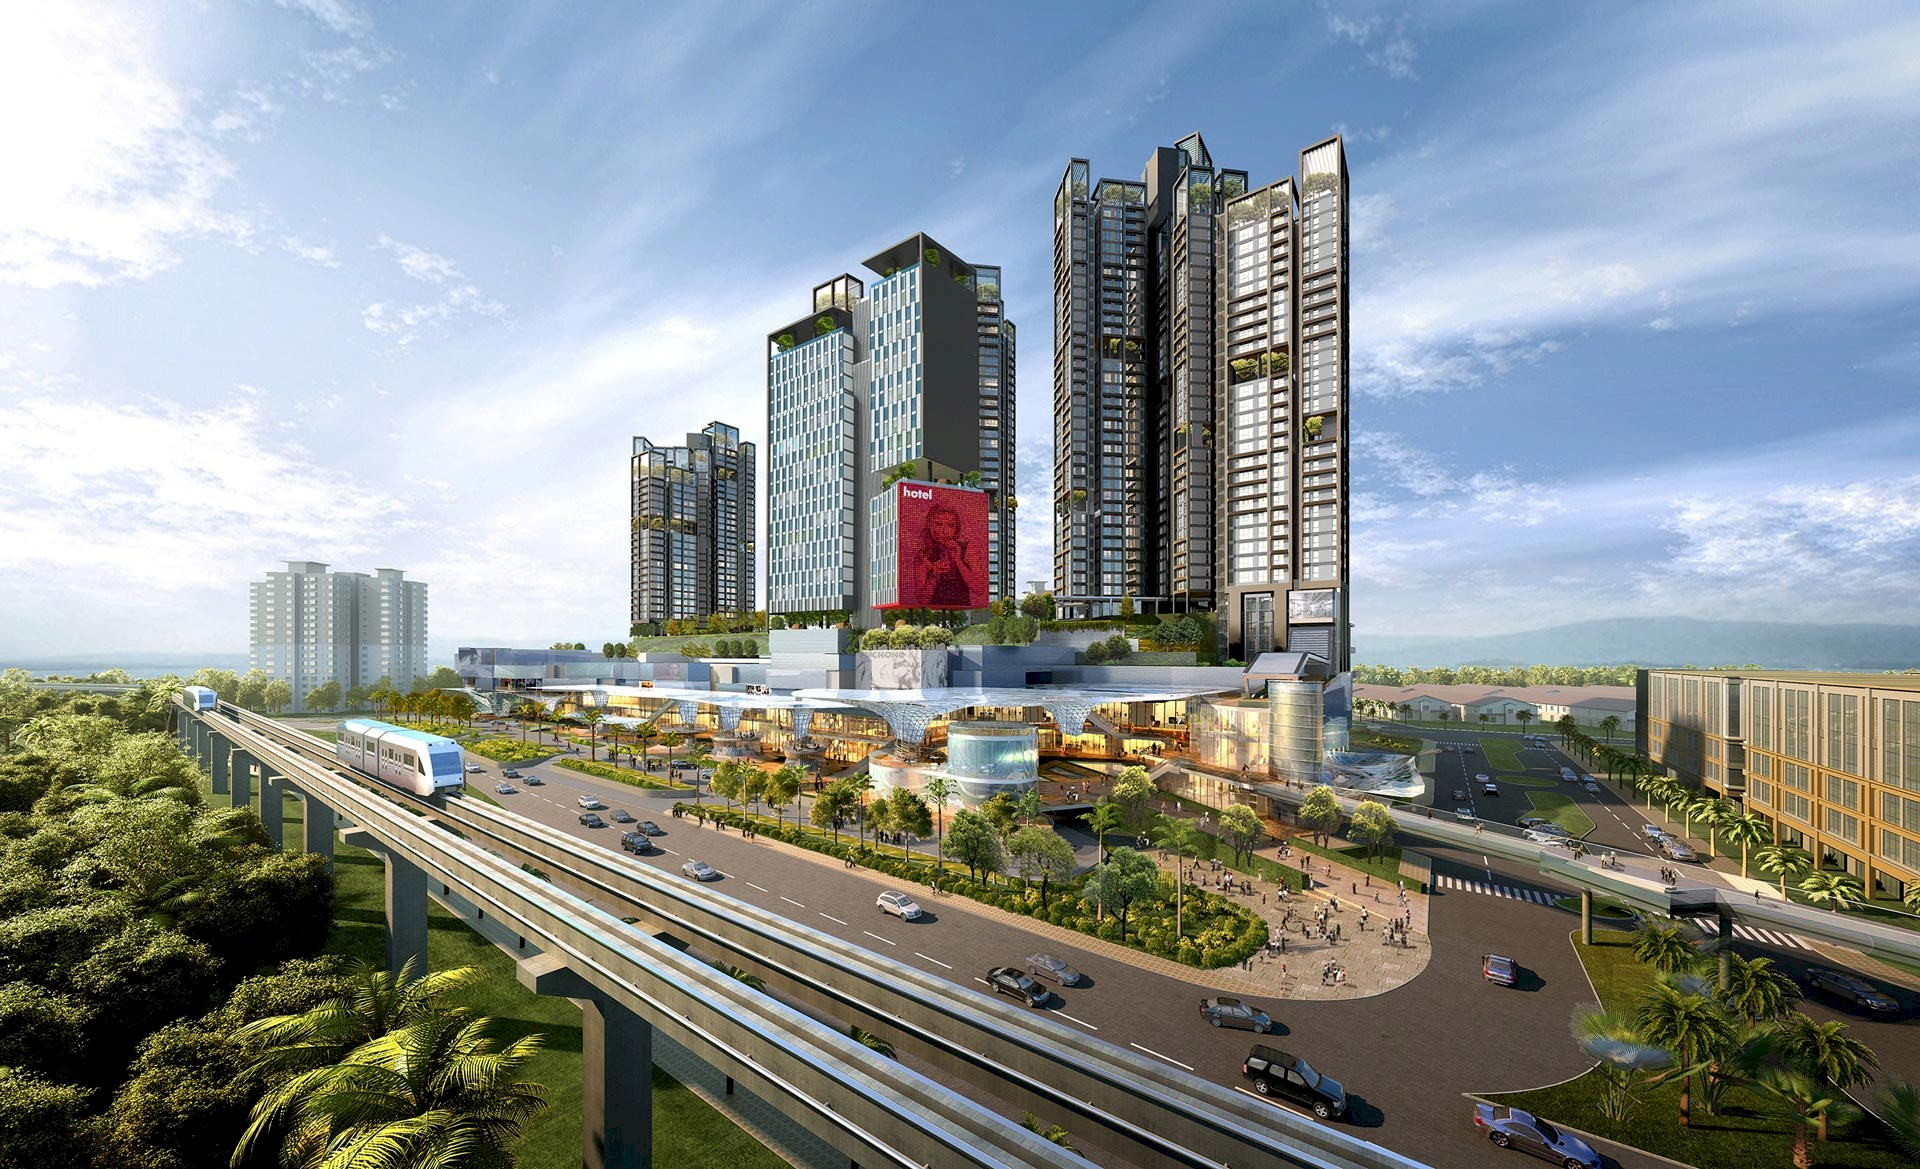 Benoy Strengthens Presence in Malaysia